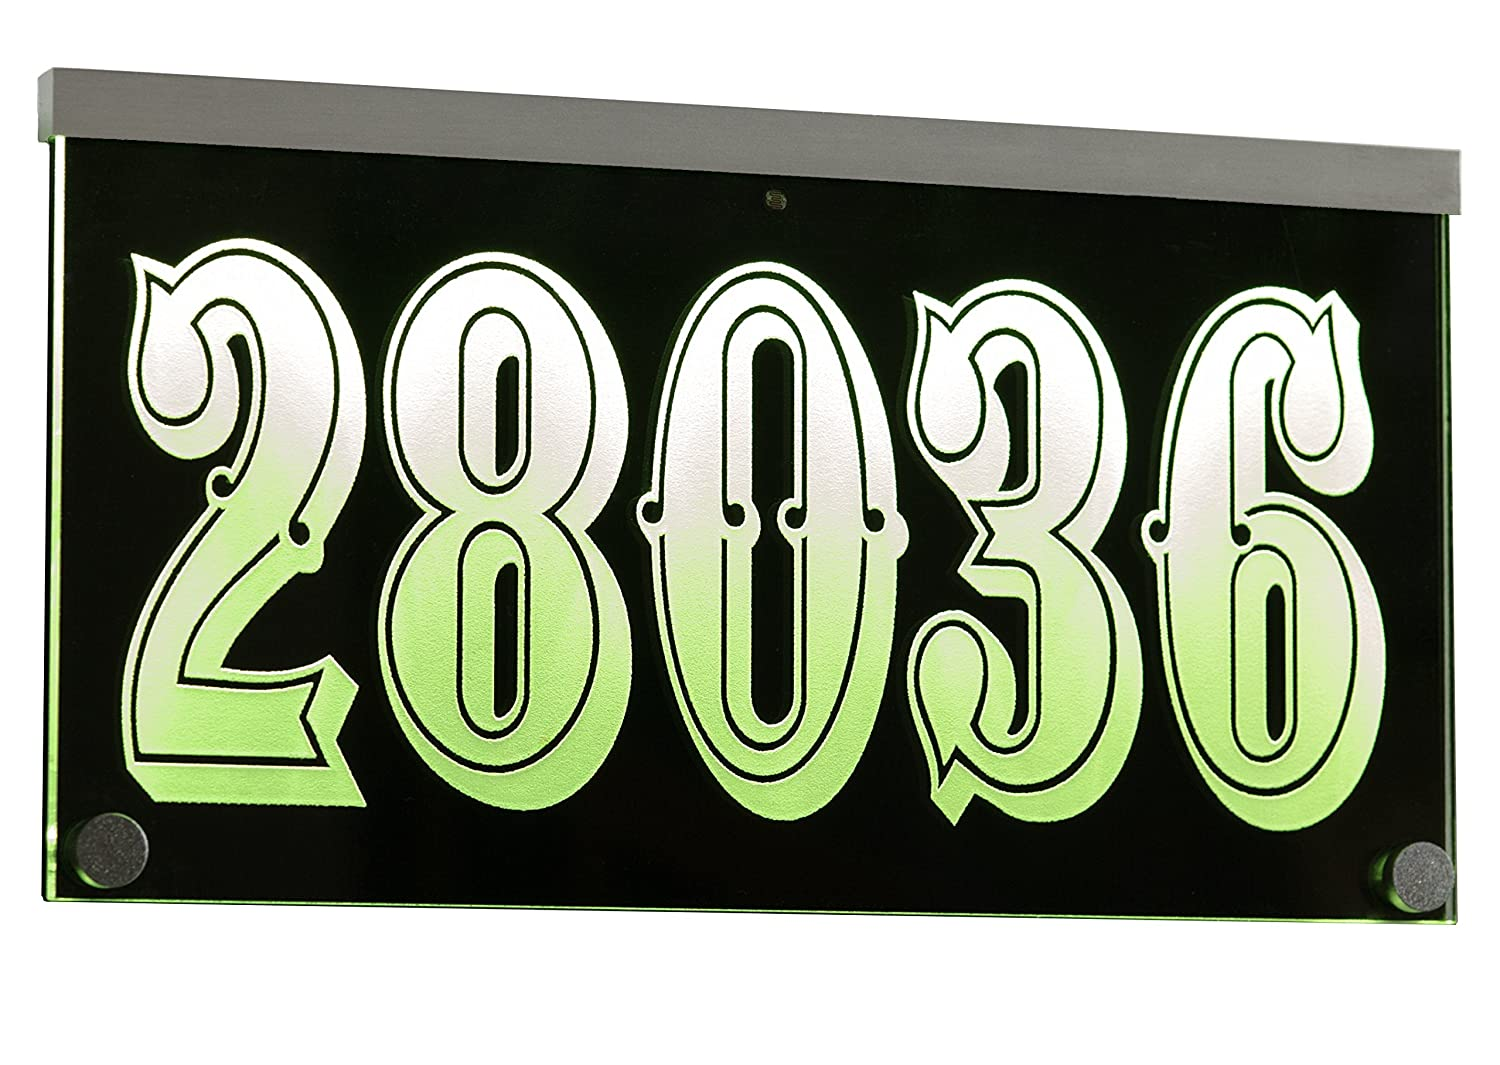 12V DC Illuminated Address Sign Plaque House Numbers LED Lighted - Laser Engraved On Acrylic Sign with Remote Control, Auto On/Off Henry Chou